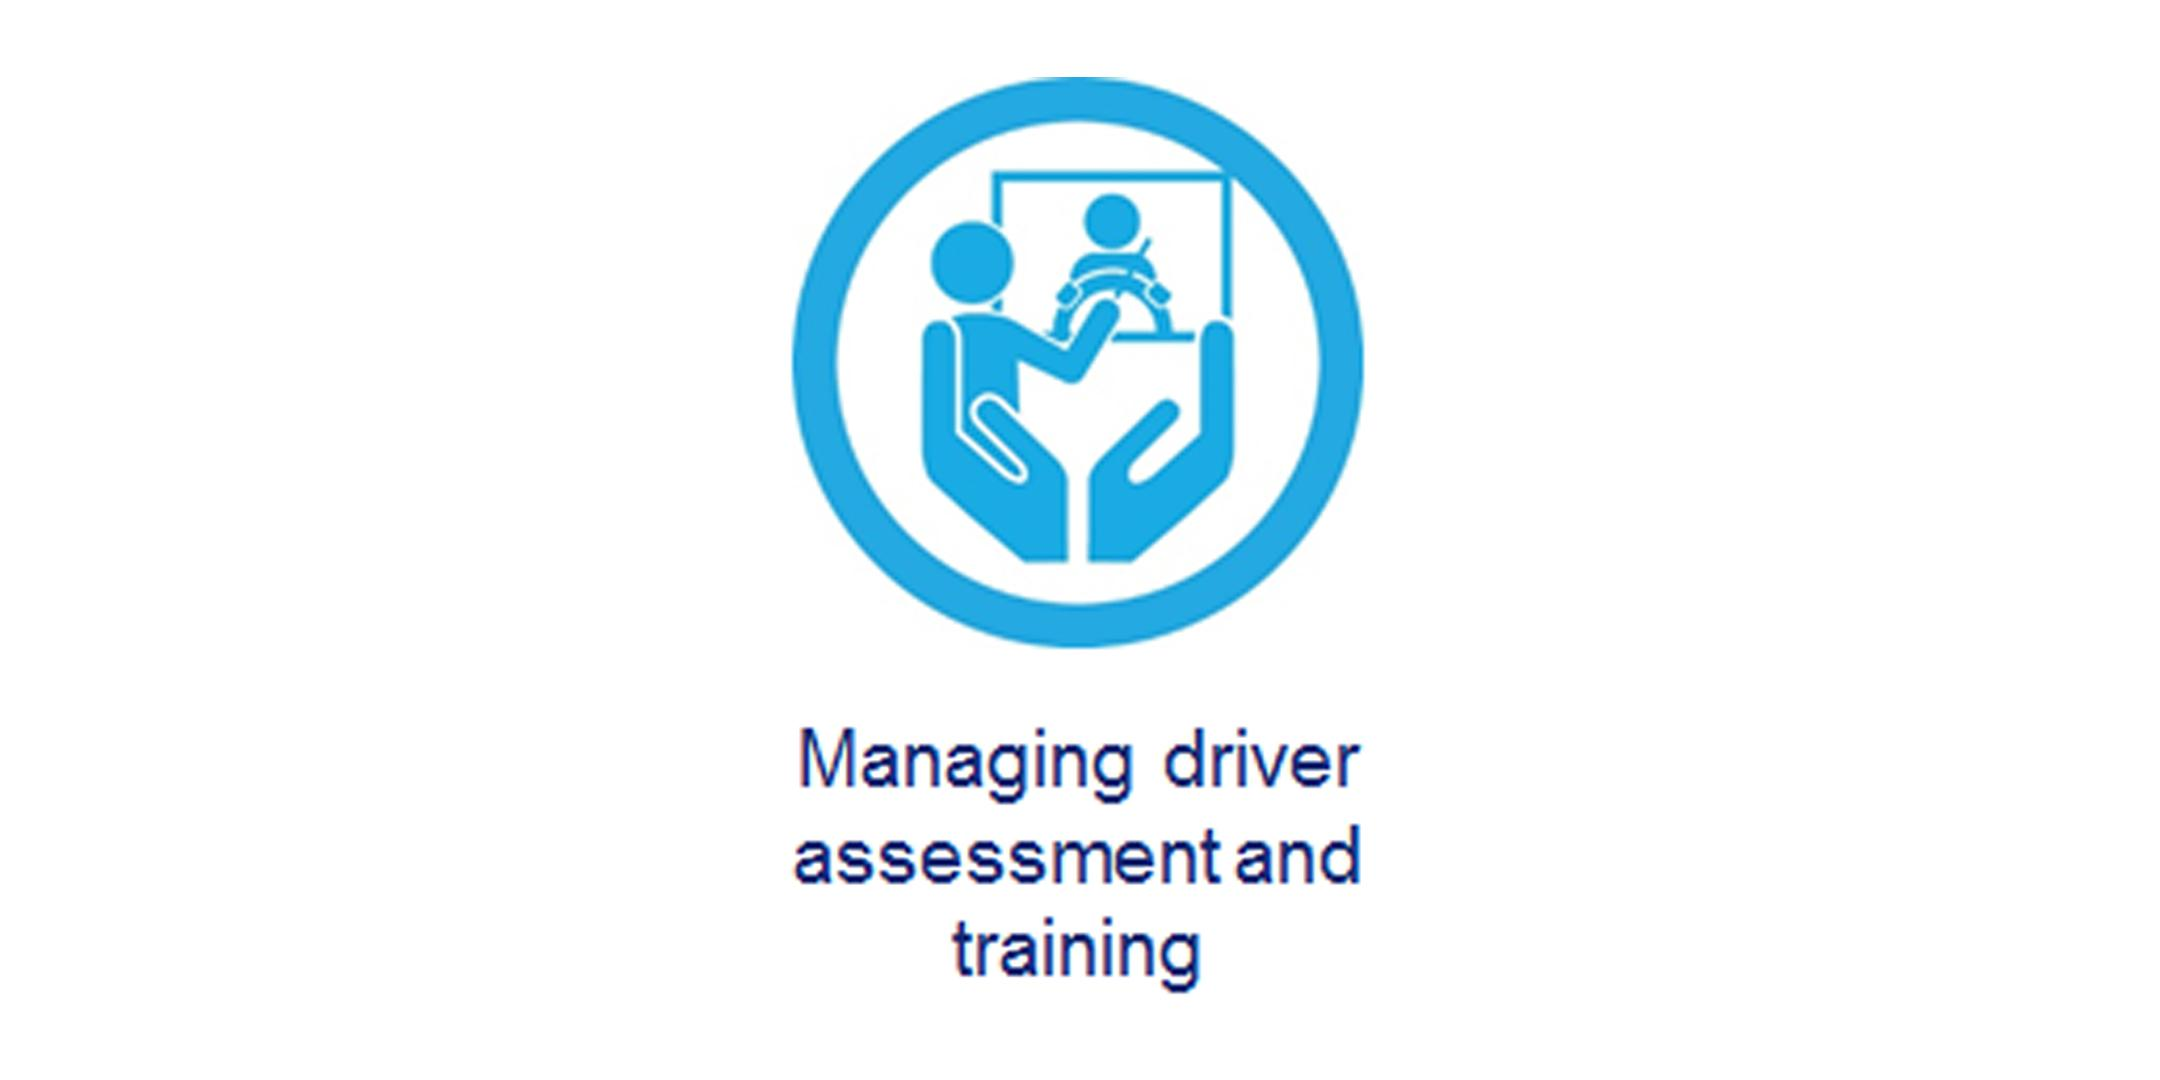 4 - Managing driver training and development